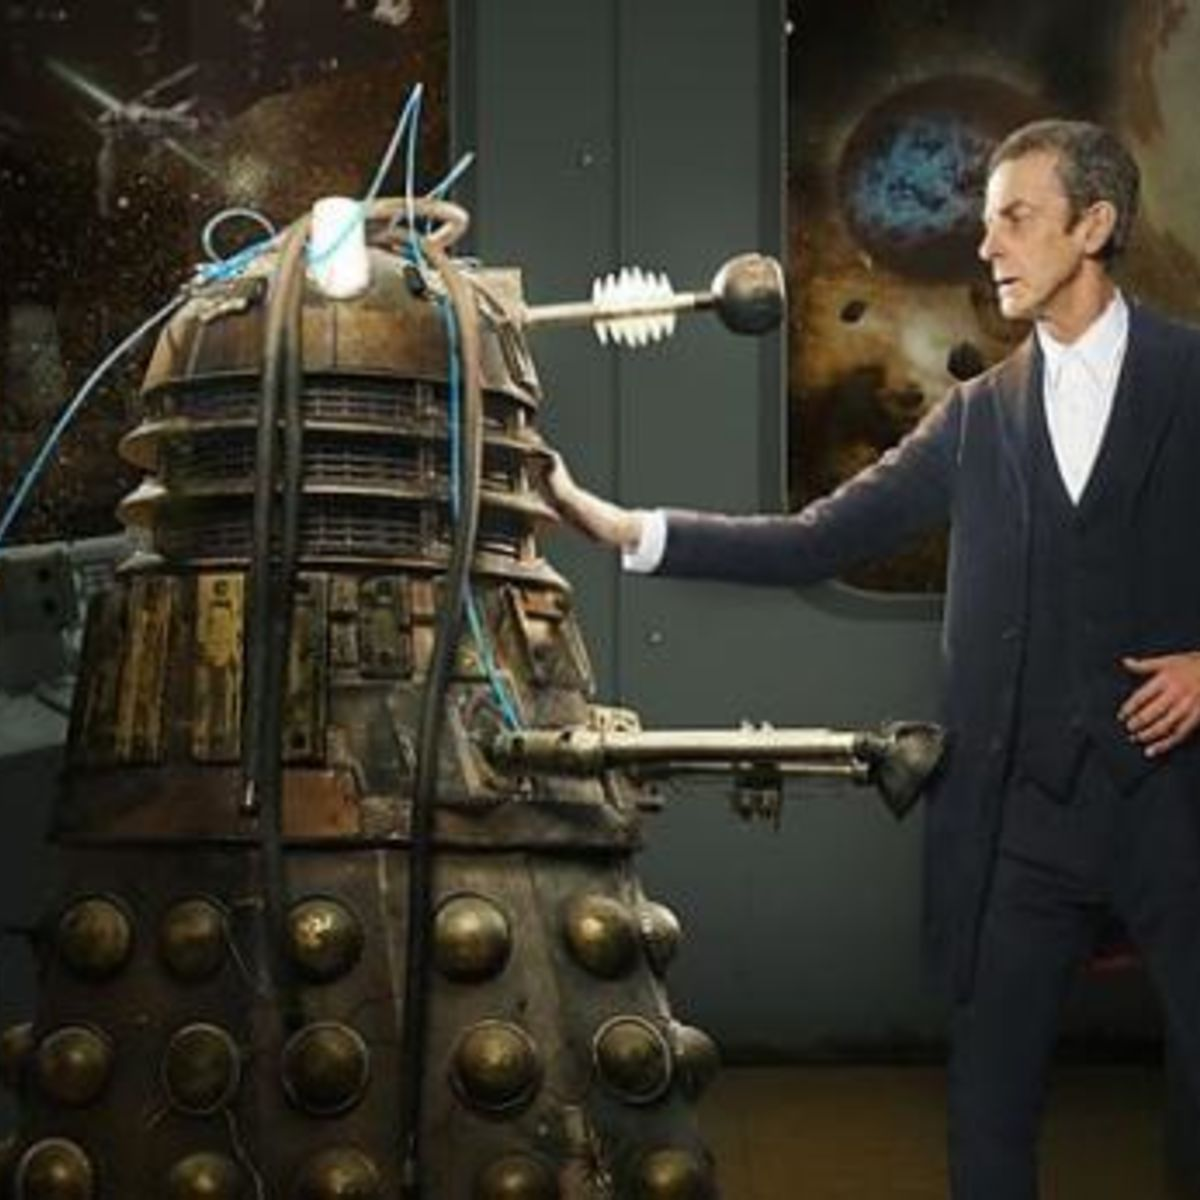 doctorwho_capaldi_dalek.jpg.CROP.rectangle-large.jpg